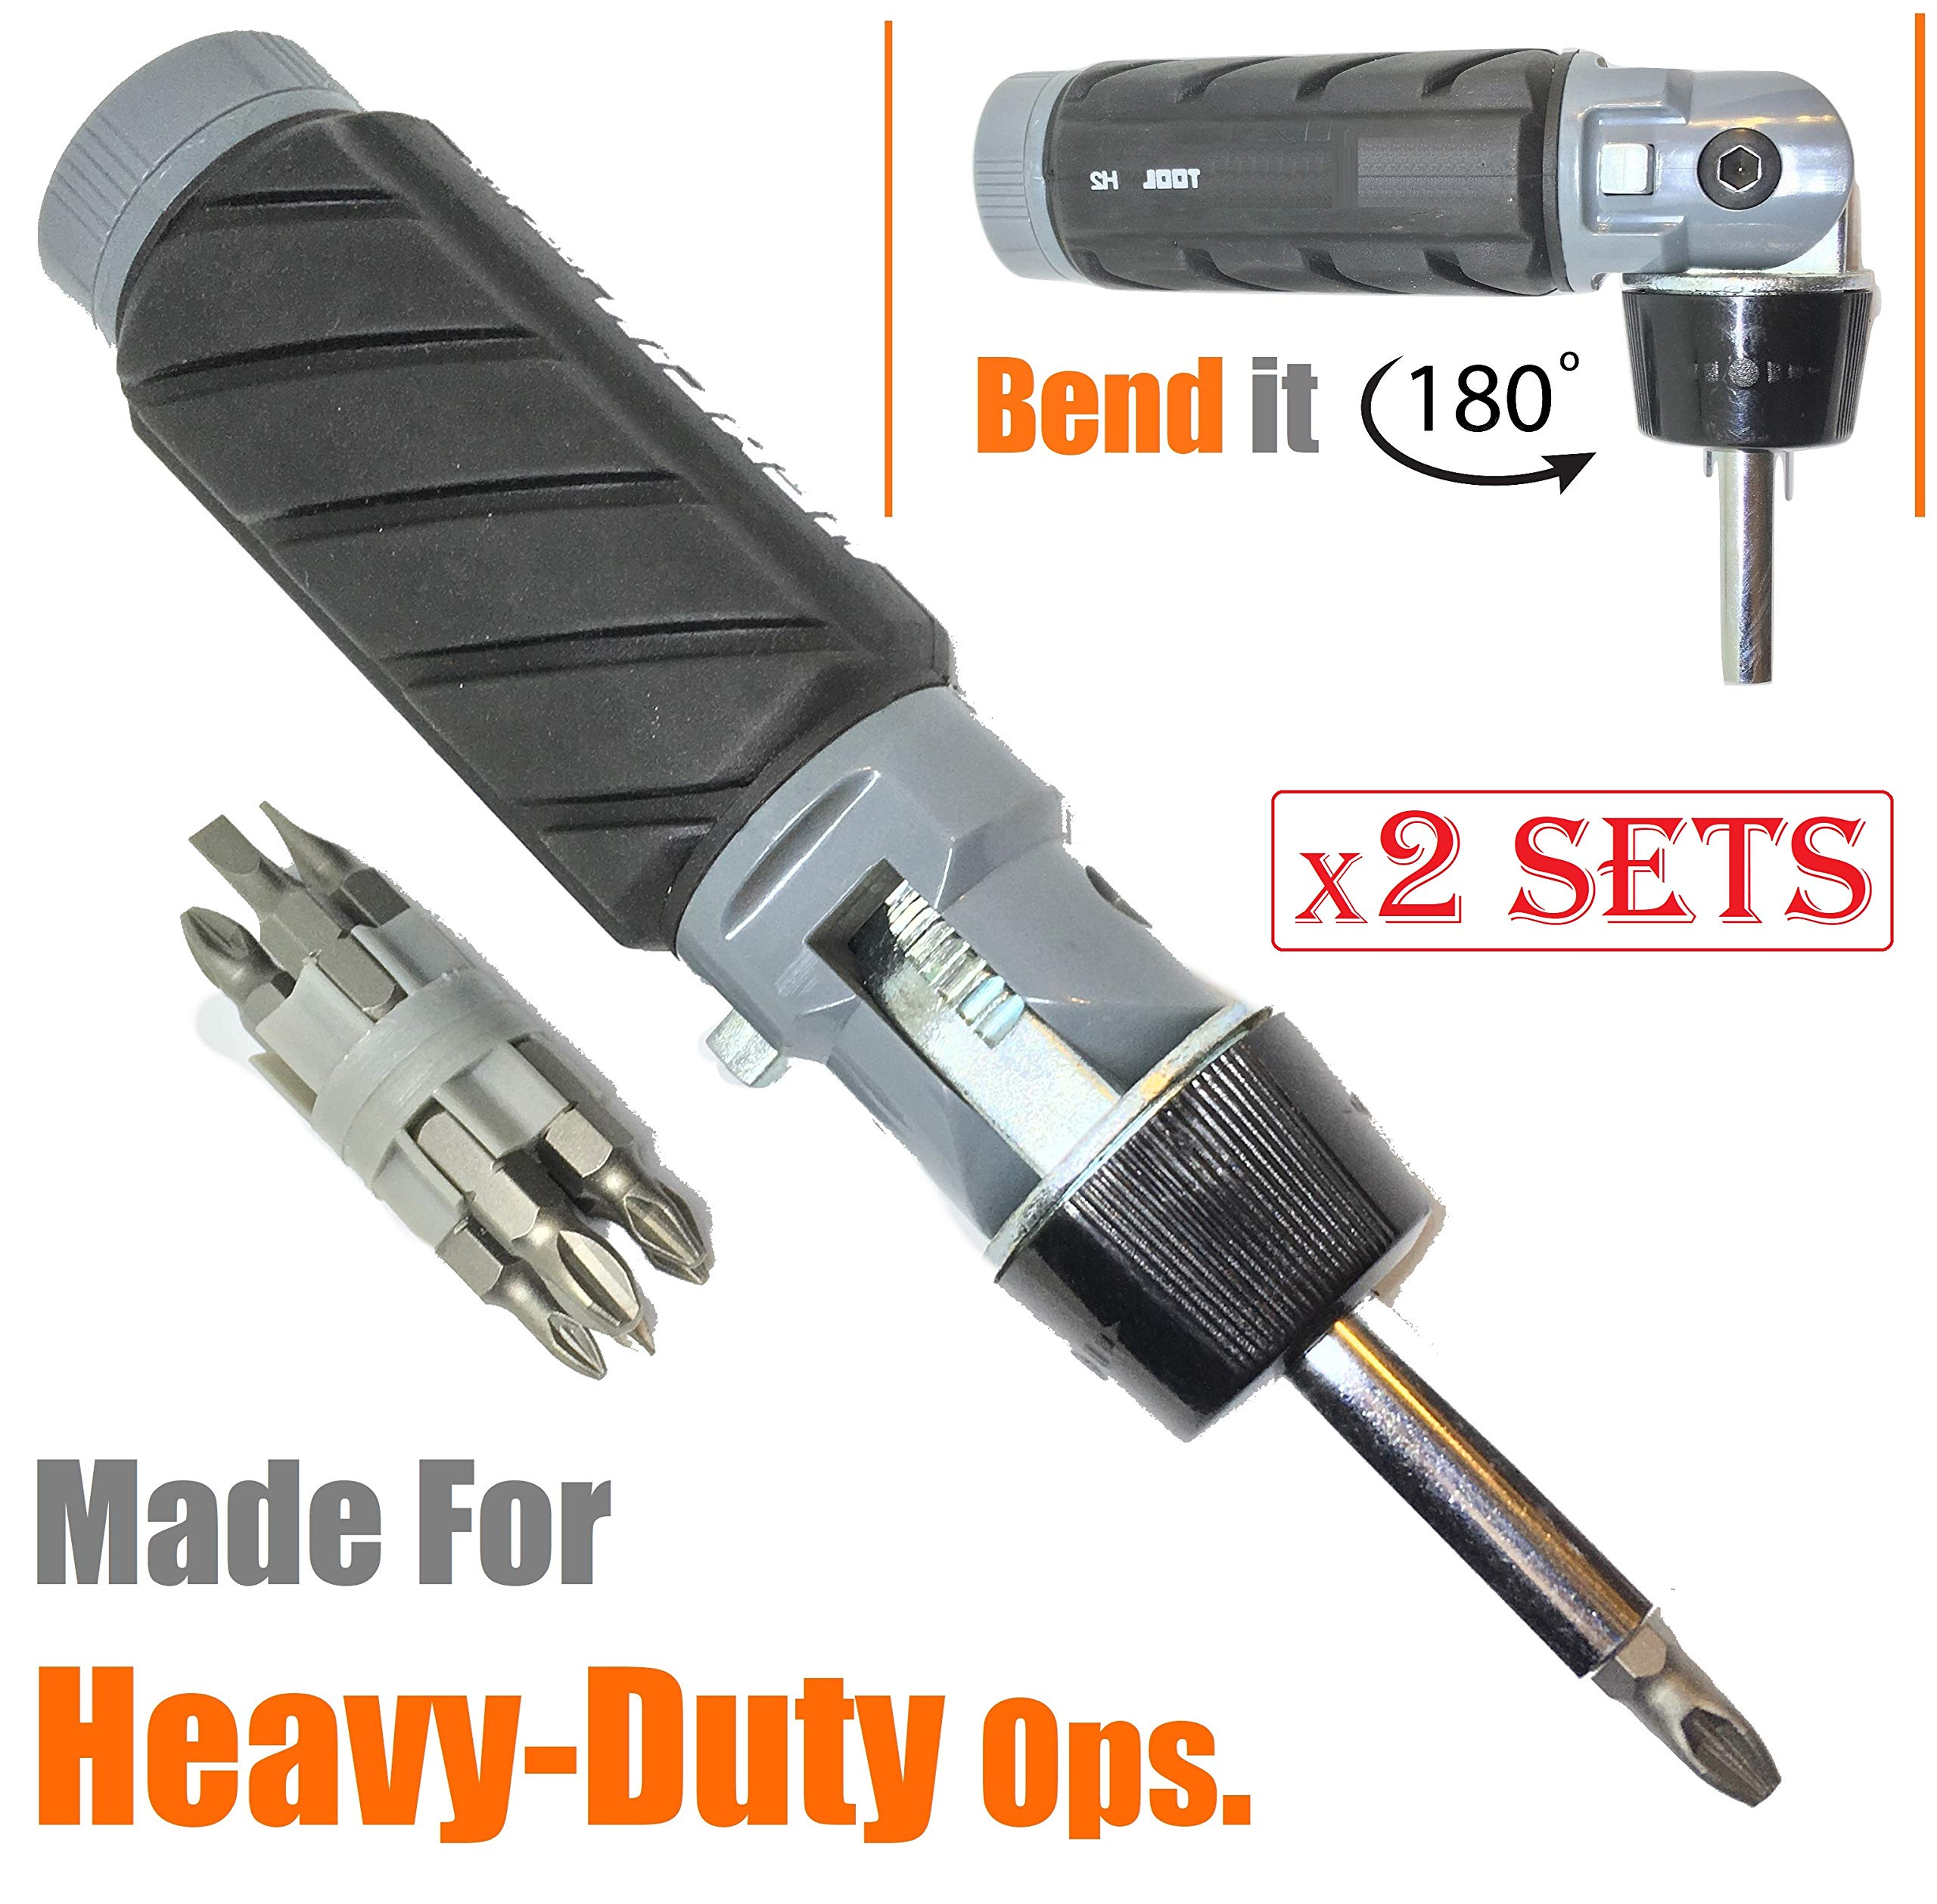 (Pack of 2) 10 in 1 Impact Multibit ADJUSTABLE ANGLE RATCHETING SCREWDRIVER SET Big Size PROFESSIONAL GRADE High Torque Compact Design Reversible Ratchet NONSLIP Rubber Handle Oily Hand Work